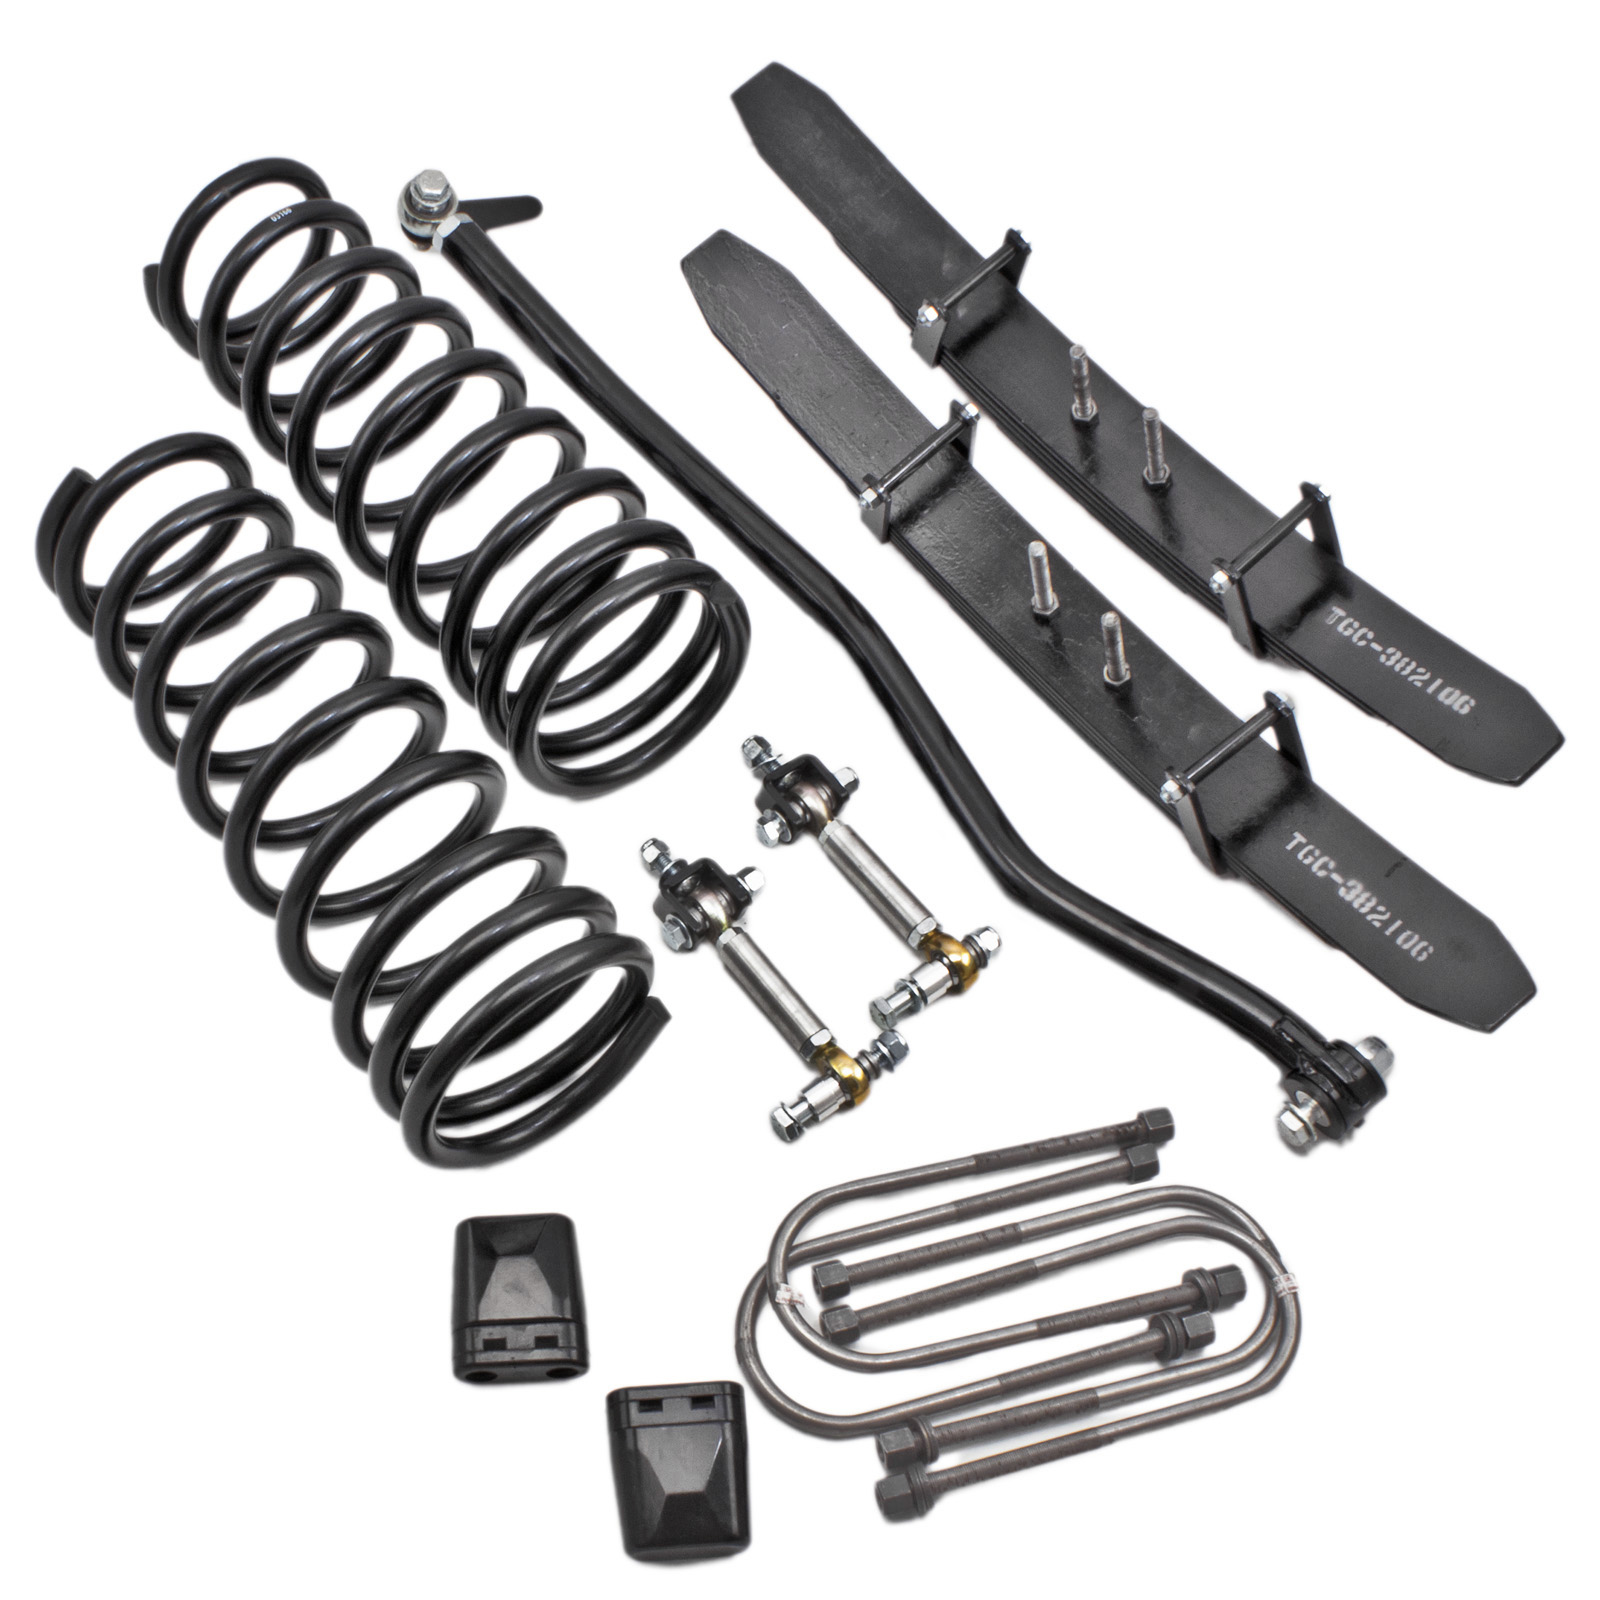 Dodge Lift Kit For 2003 Dodge Ram 3500 Truck Lift Kits